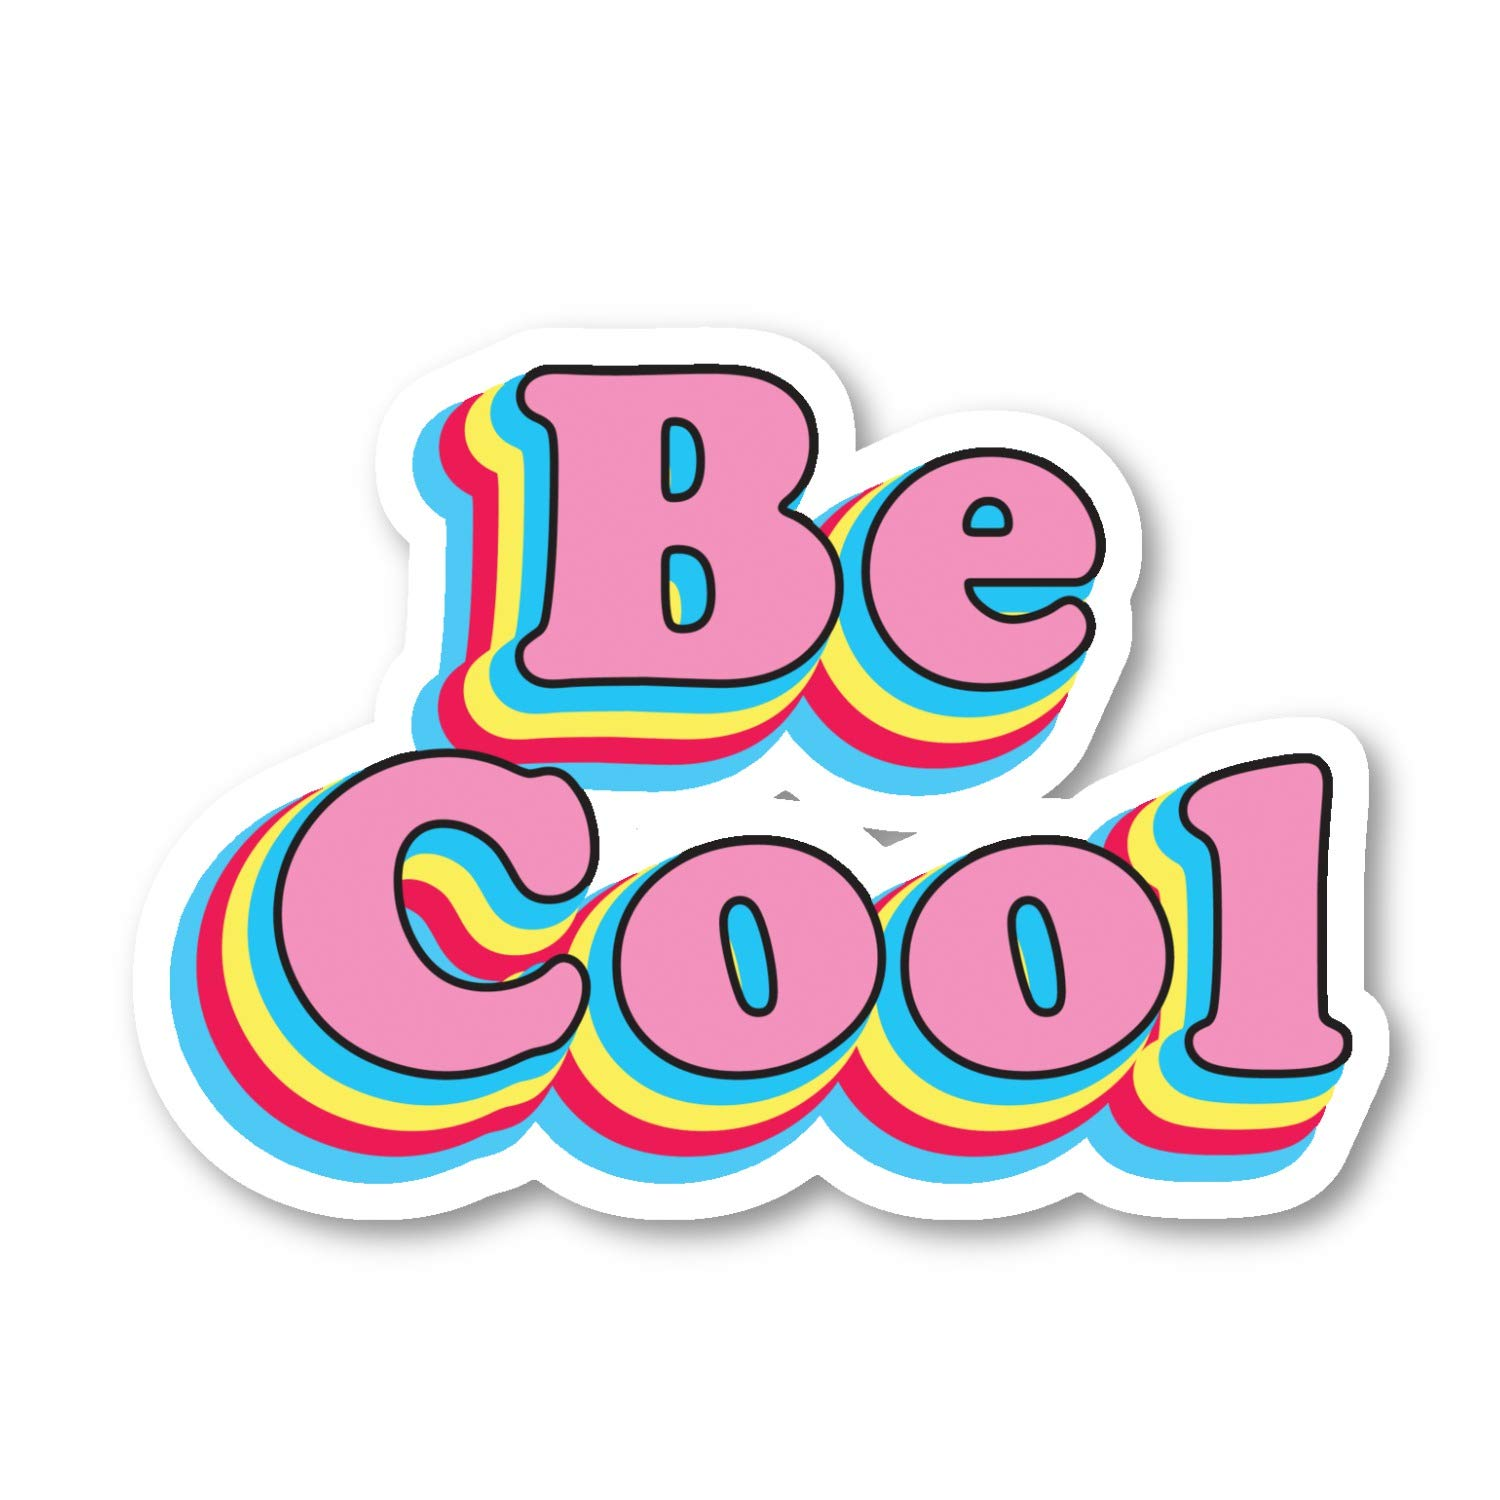 I use to be cool funny vinyl decal sticker